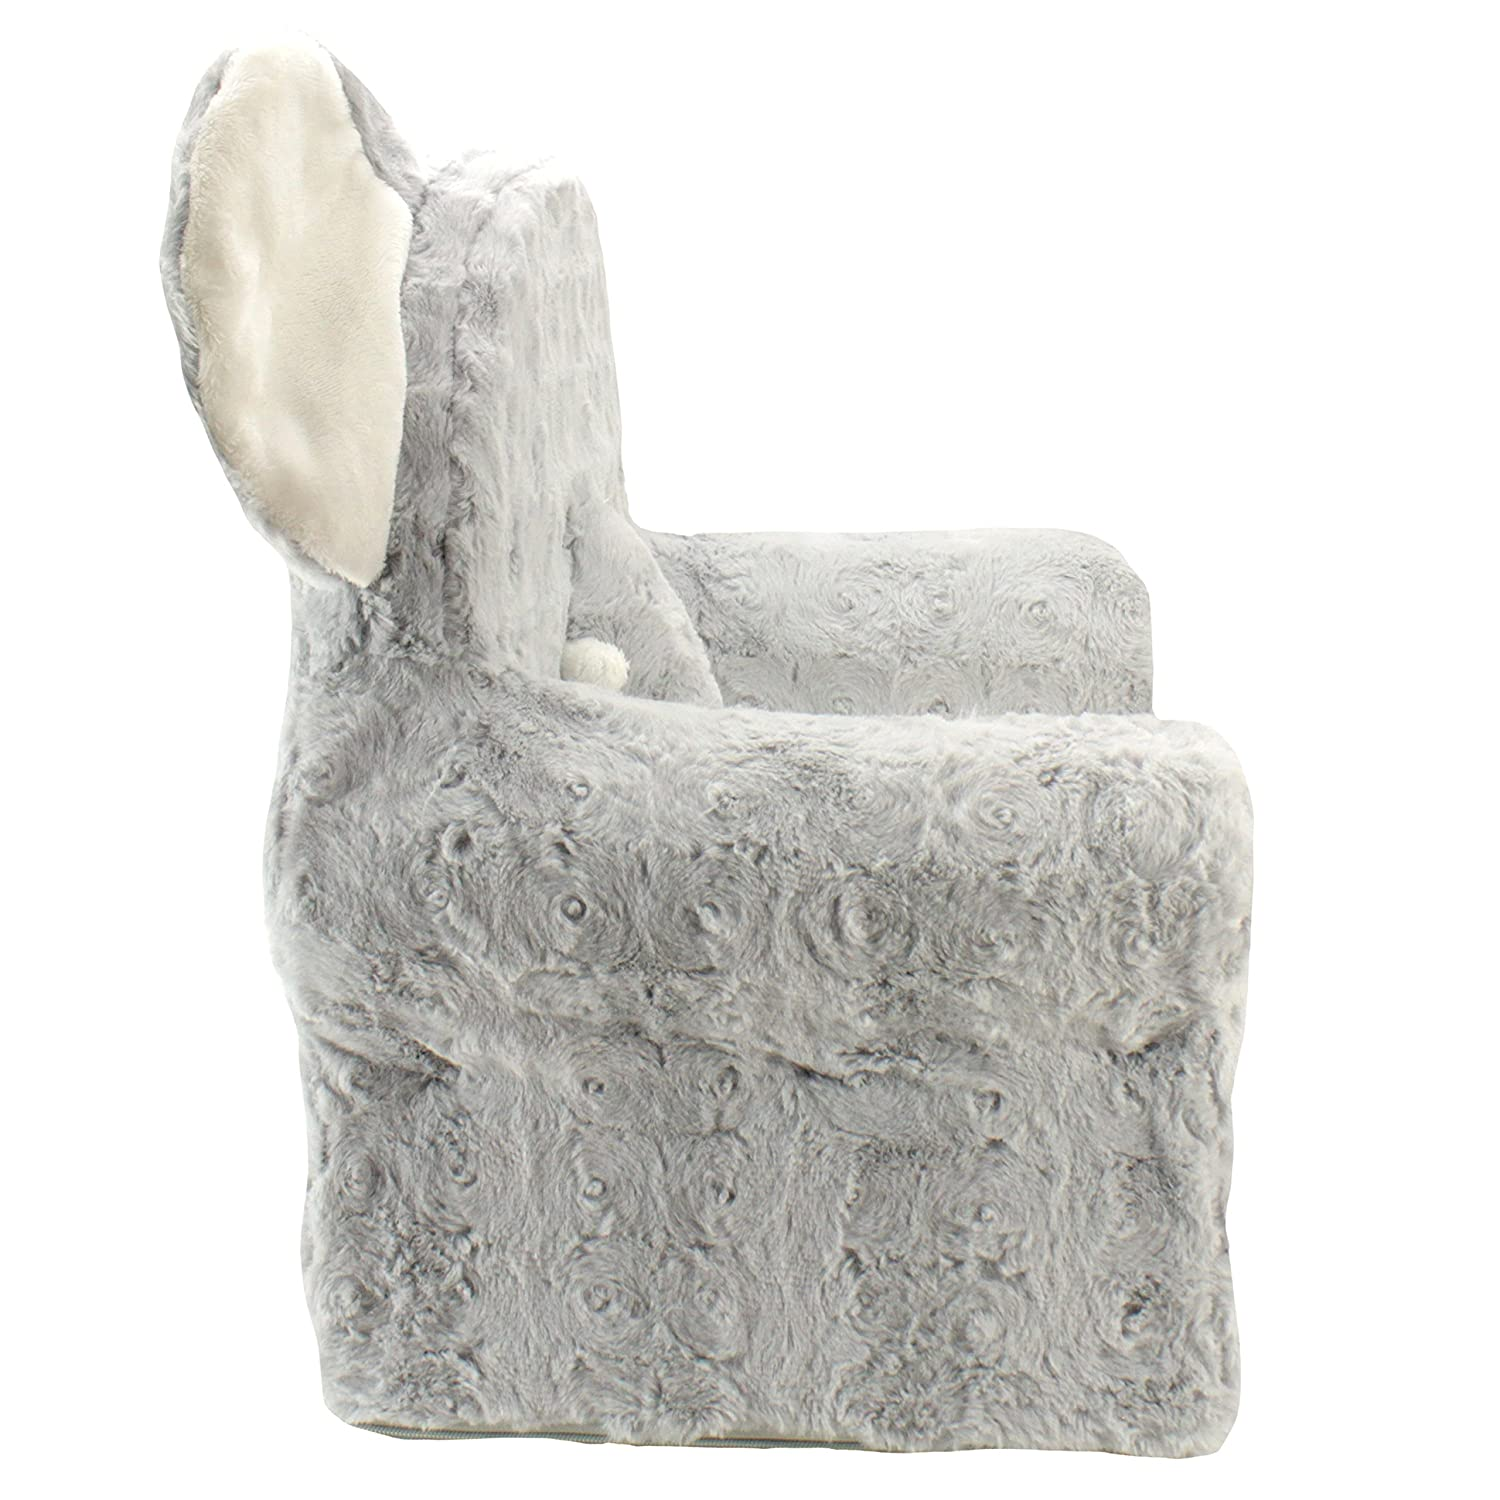 Sweet Seats | Grey Elephant Childrens Chair | Large Size | Machine Washable Cover